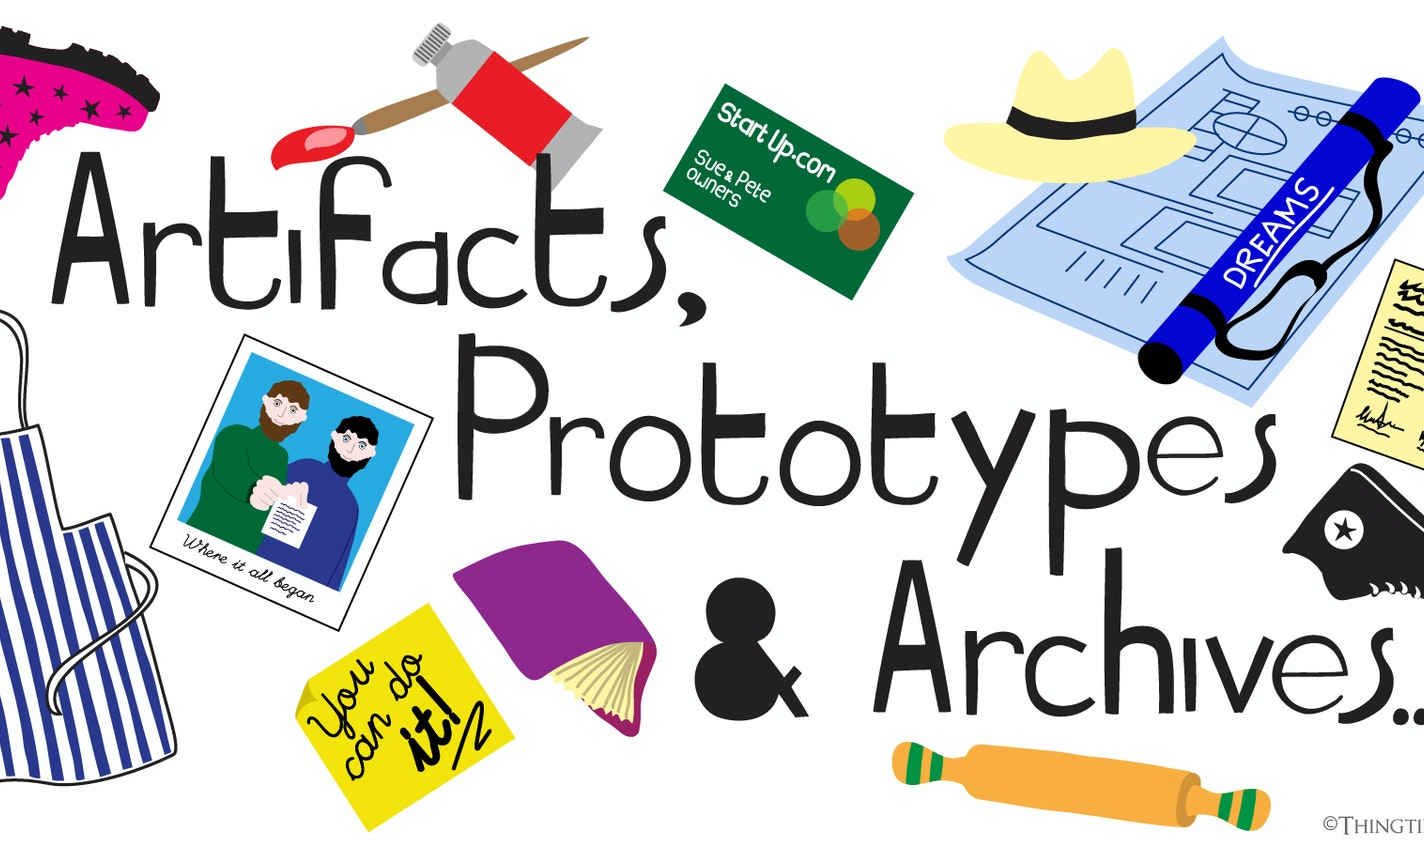 Show & Tale: Artifacts, Prototypes & Archives